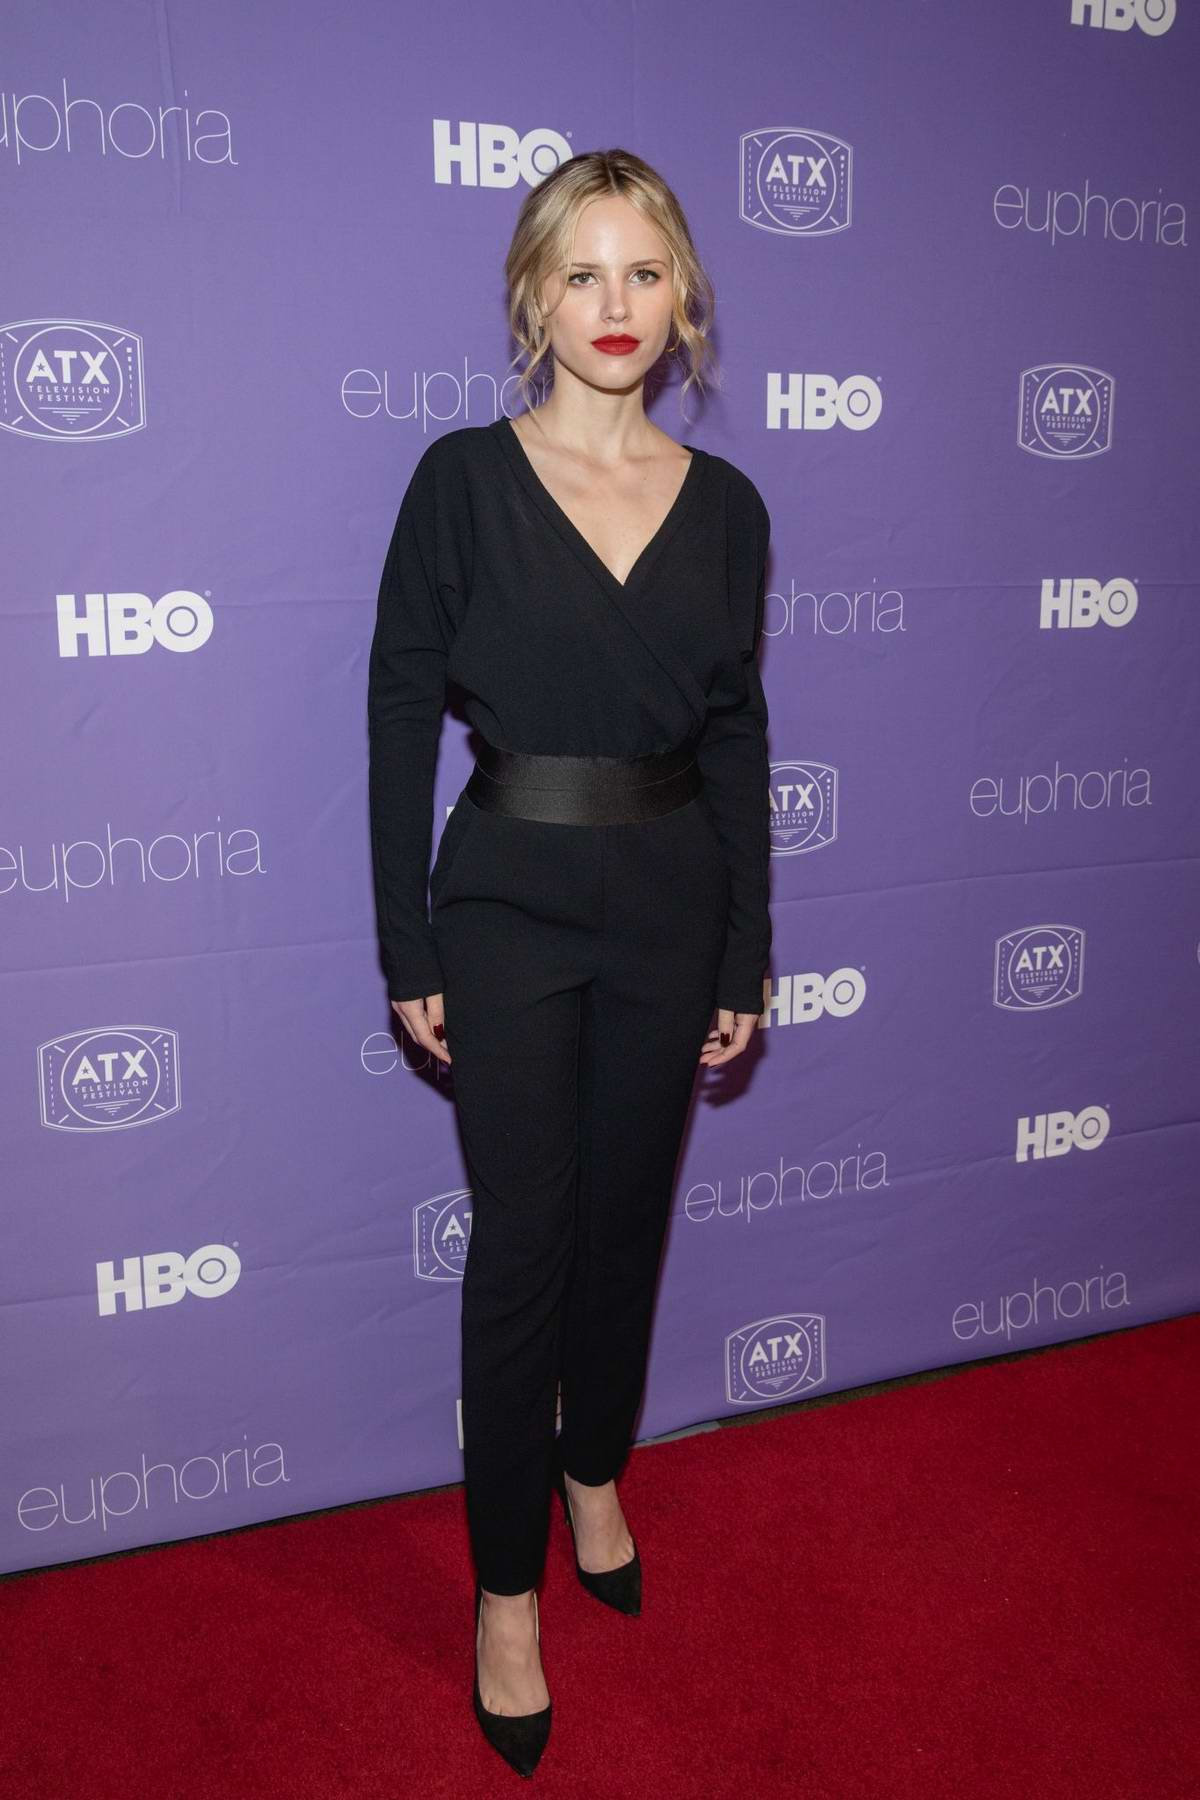 Halston Sage attends 'Prodigal Son' TV Show premiere at ATX Television Festival in Austin, Texas